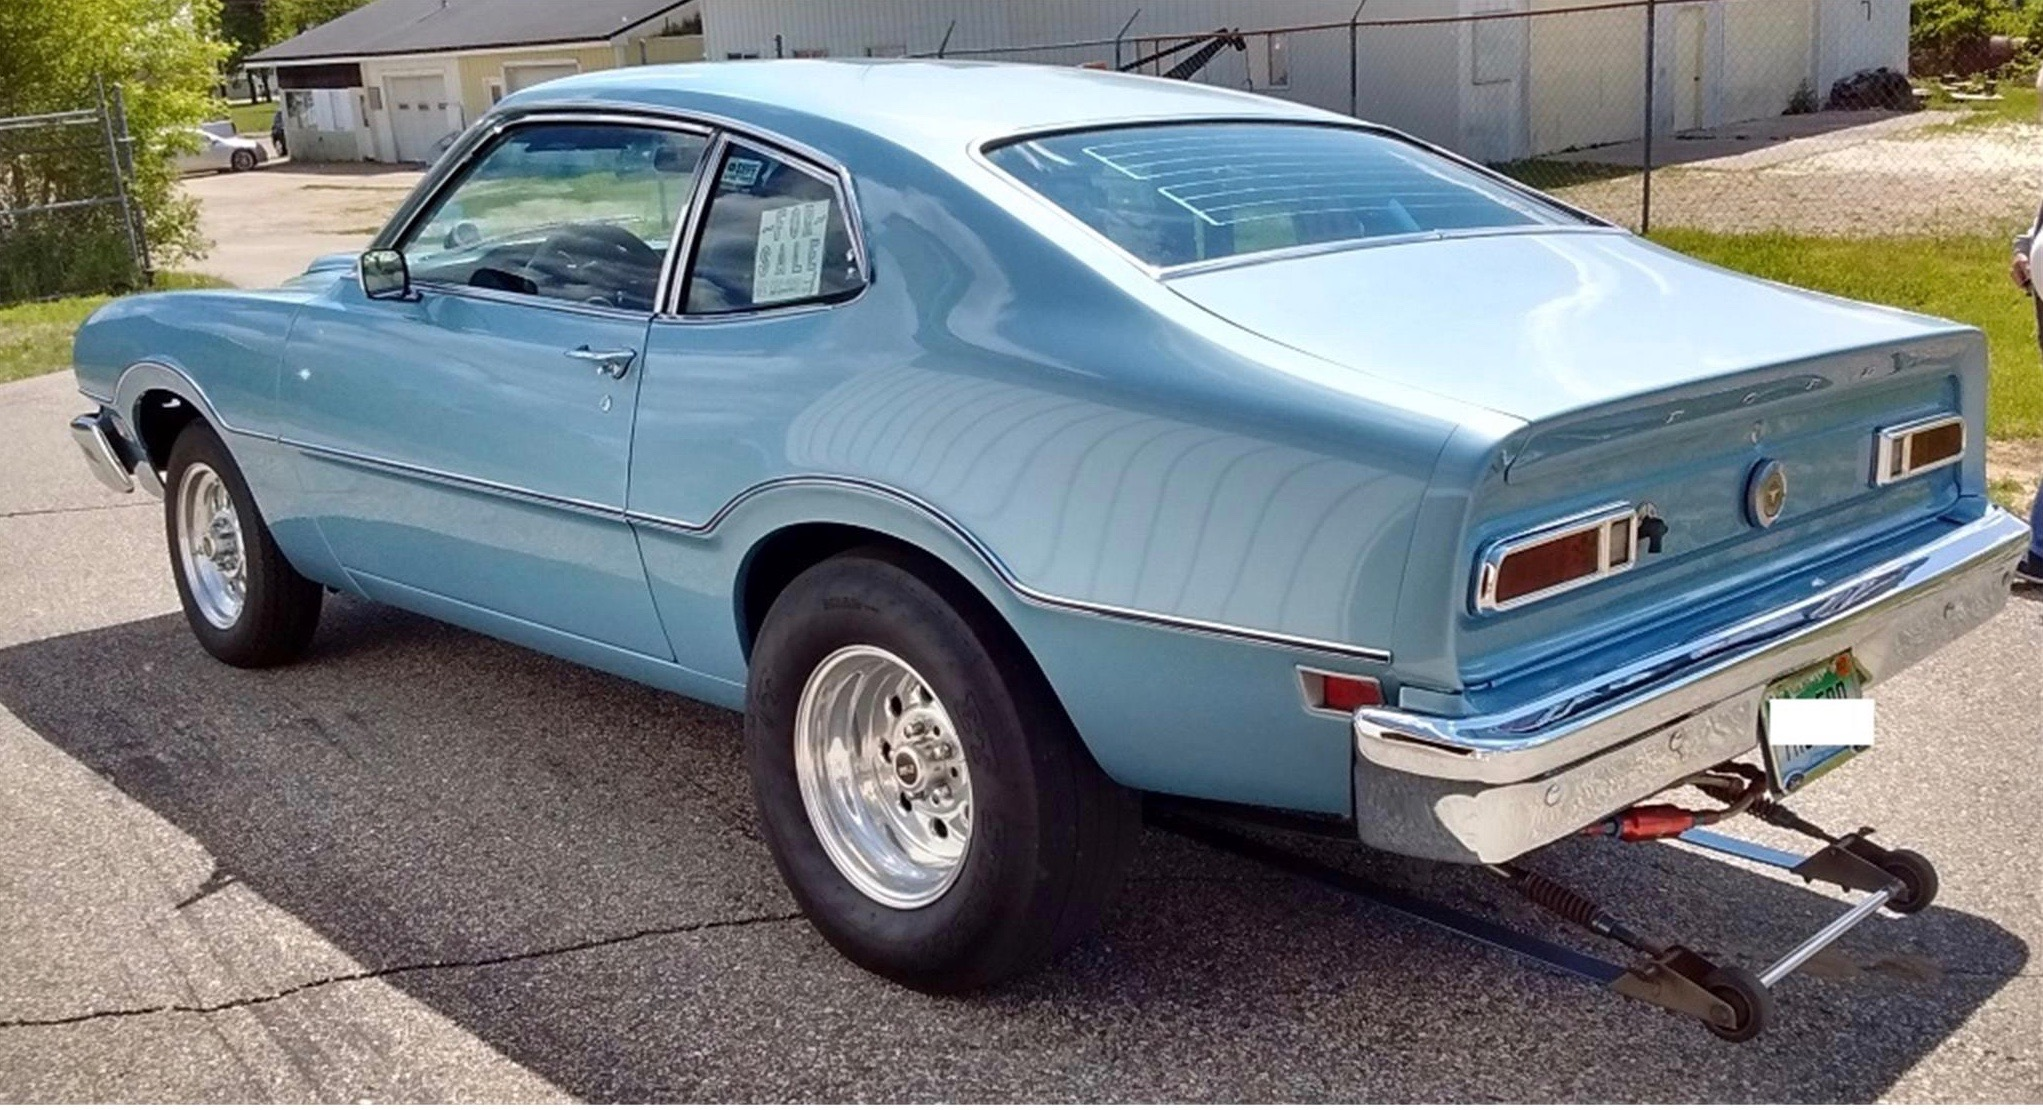 1976 Ford Maverick, This Maverick has become a Pro Street muscle machine, ClassicCars.com Journal